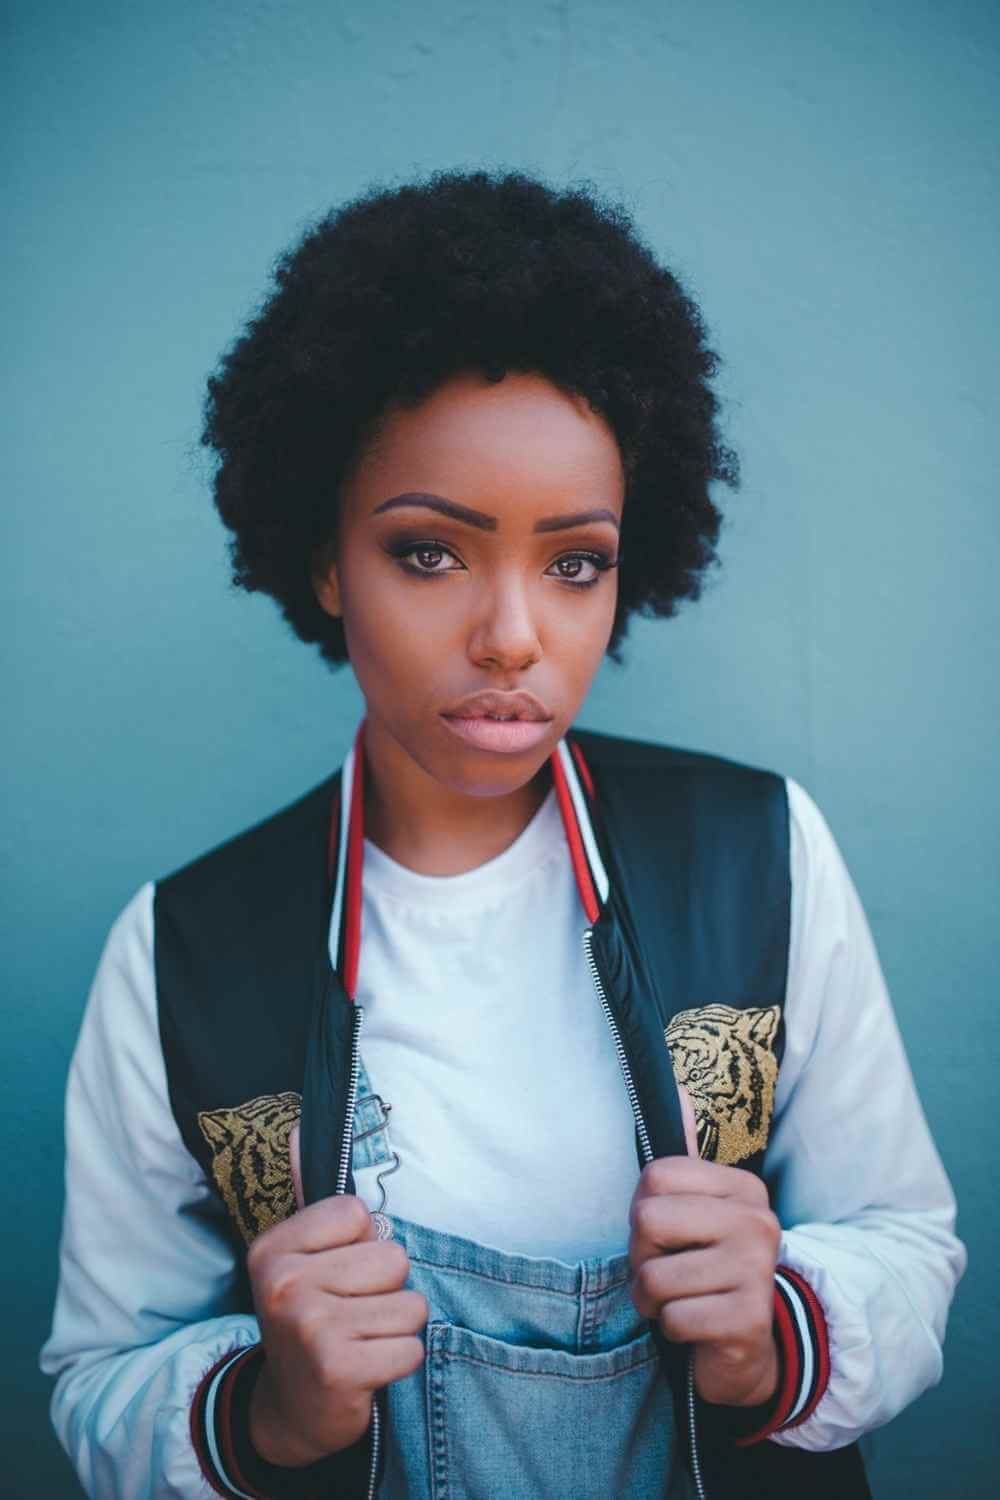 black woman with afro in front of light blue background grabbing onto her jacket